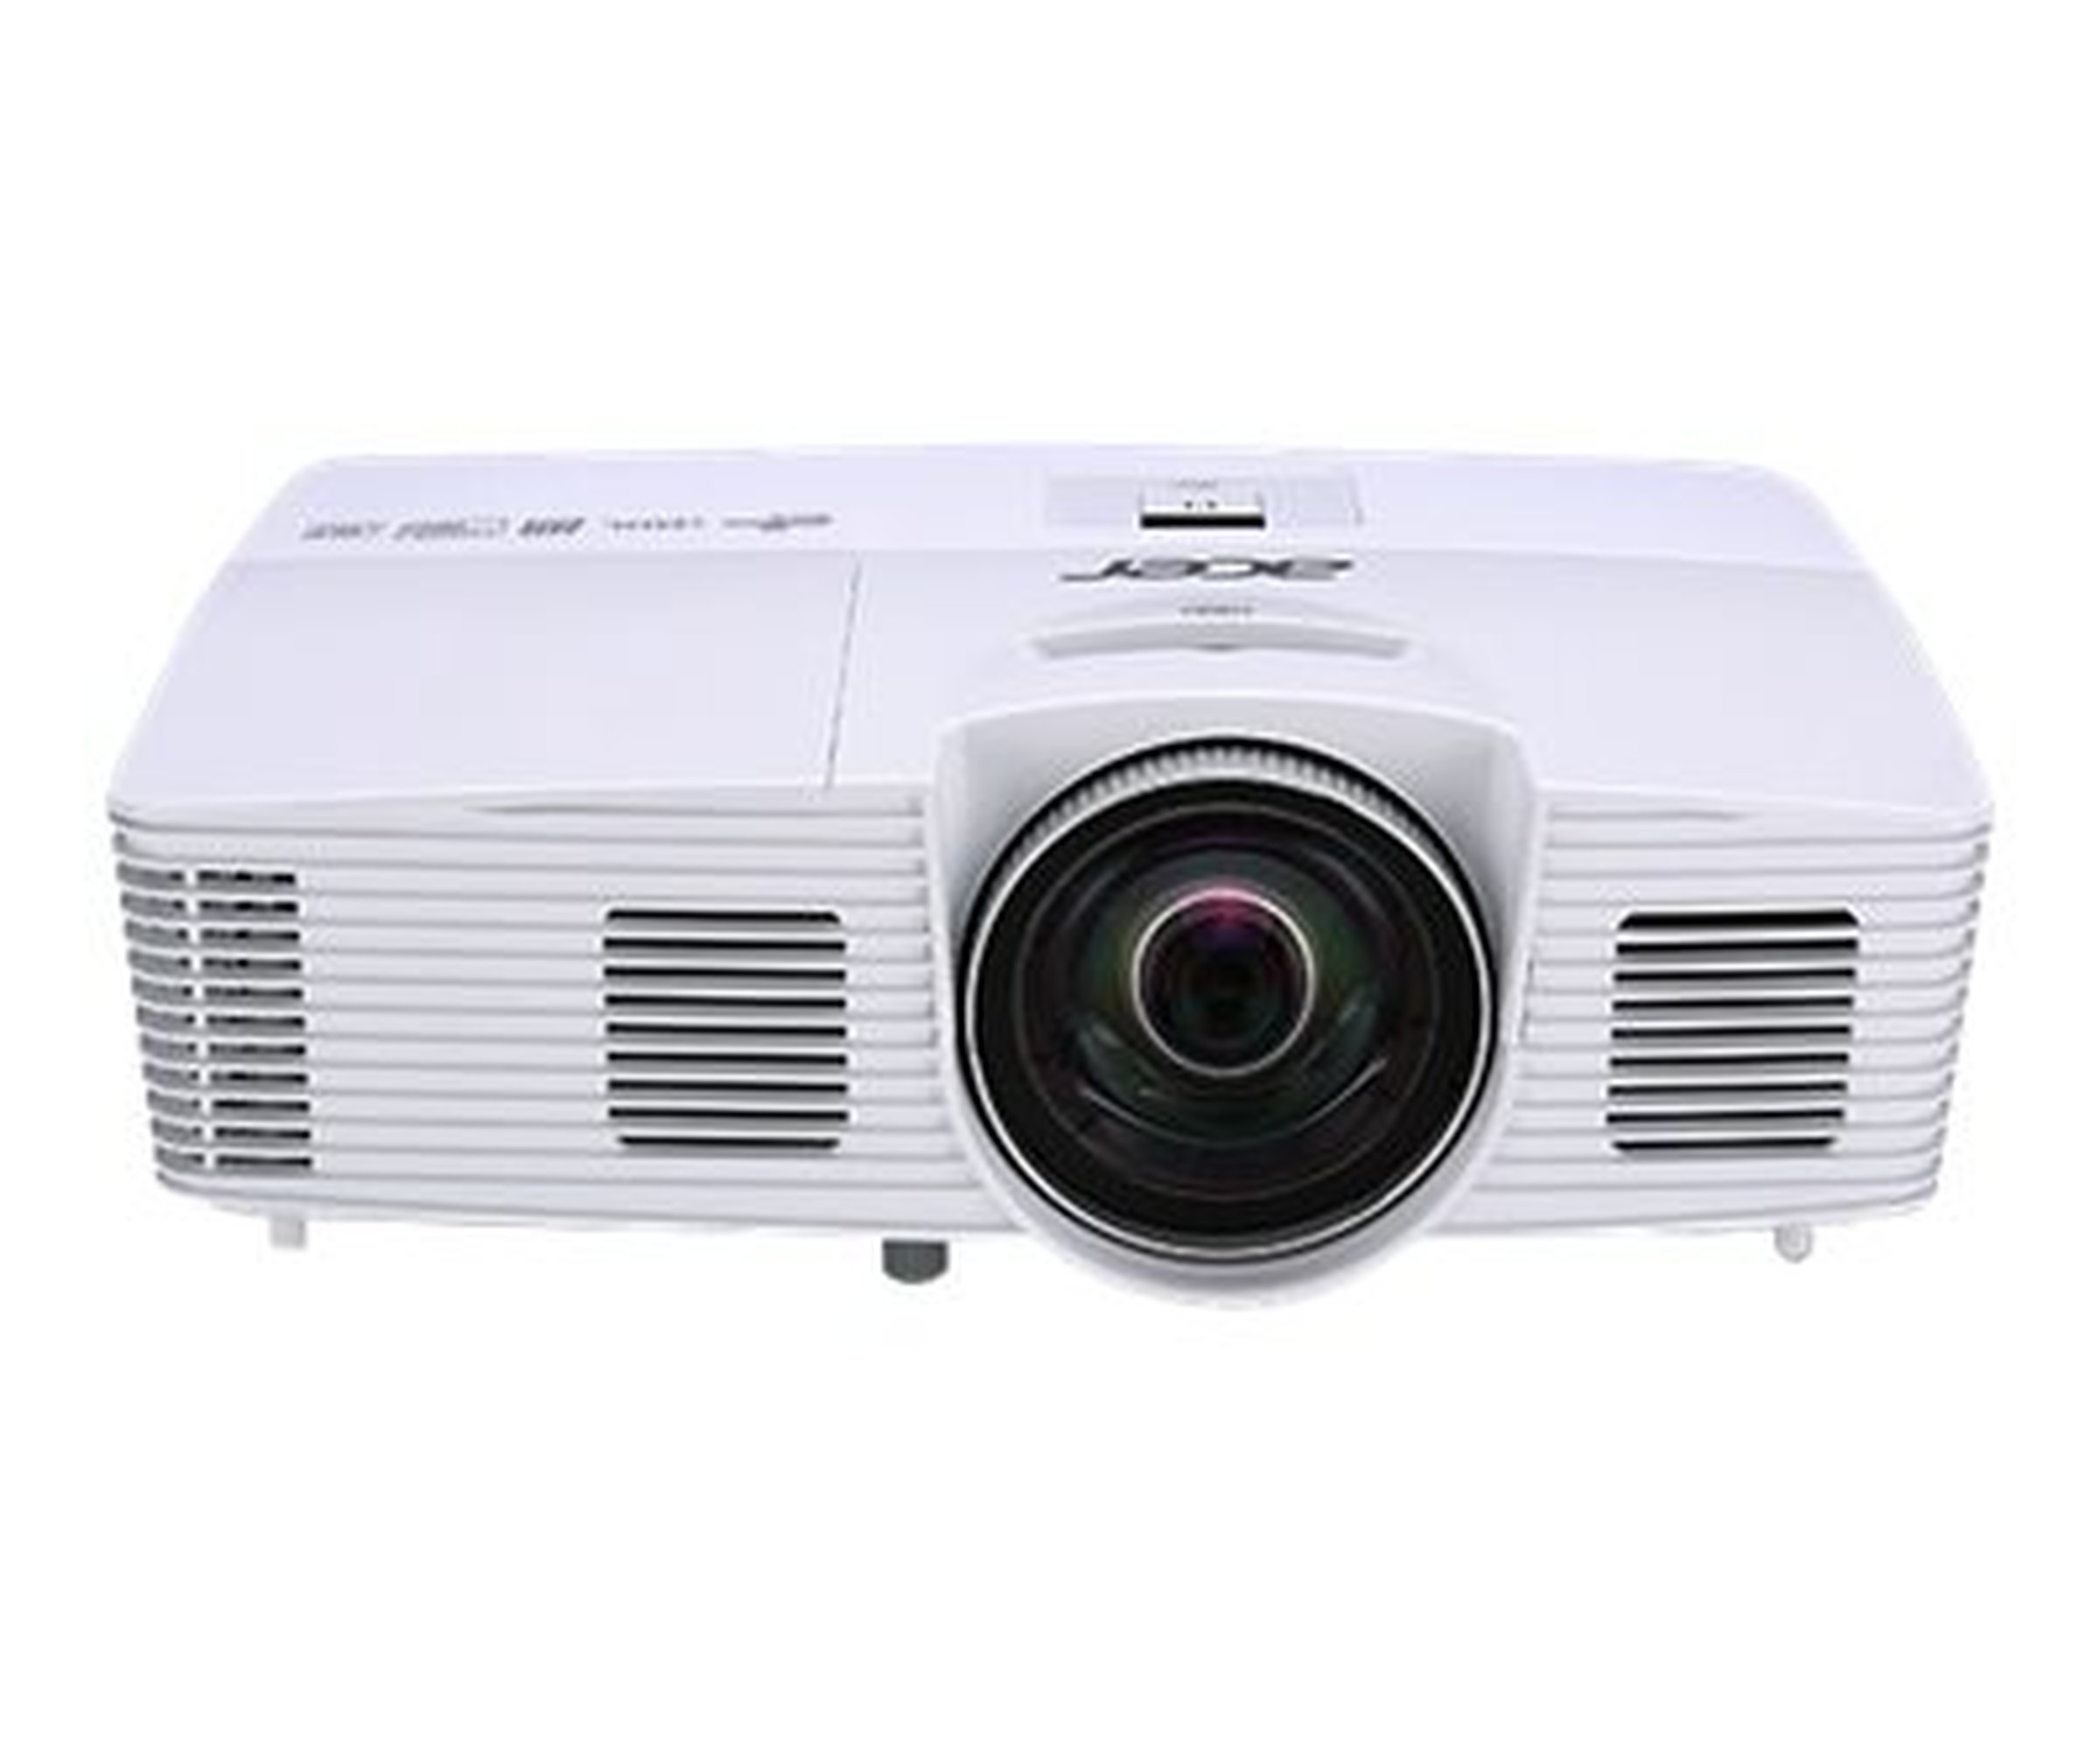 acer-s1286h-data-projector-3500-ansi-lumens-dlp-xga-1024x768-ceiling-mounted-projector-white_1.jpg